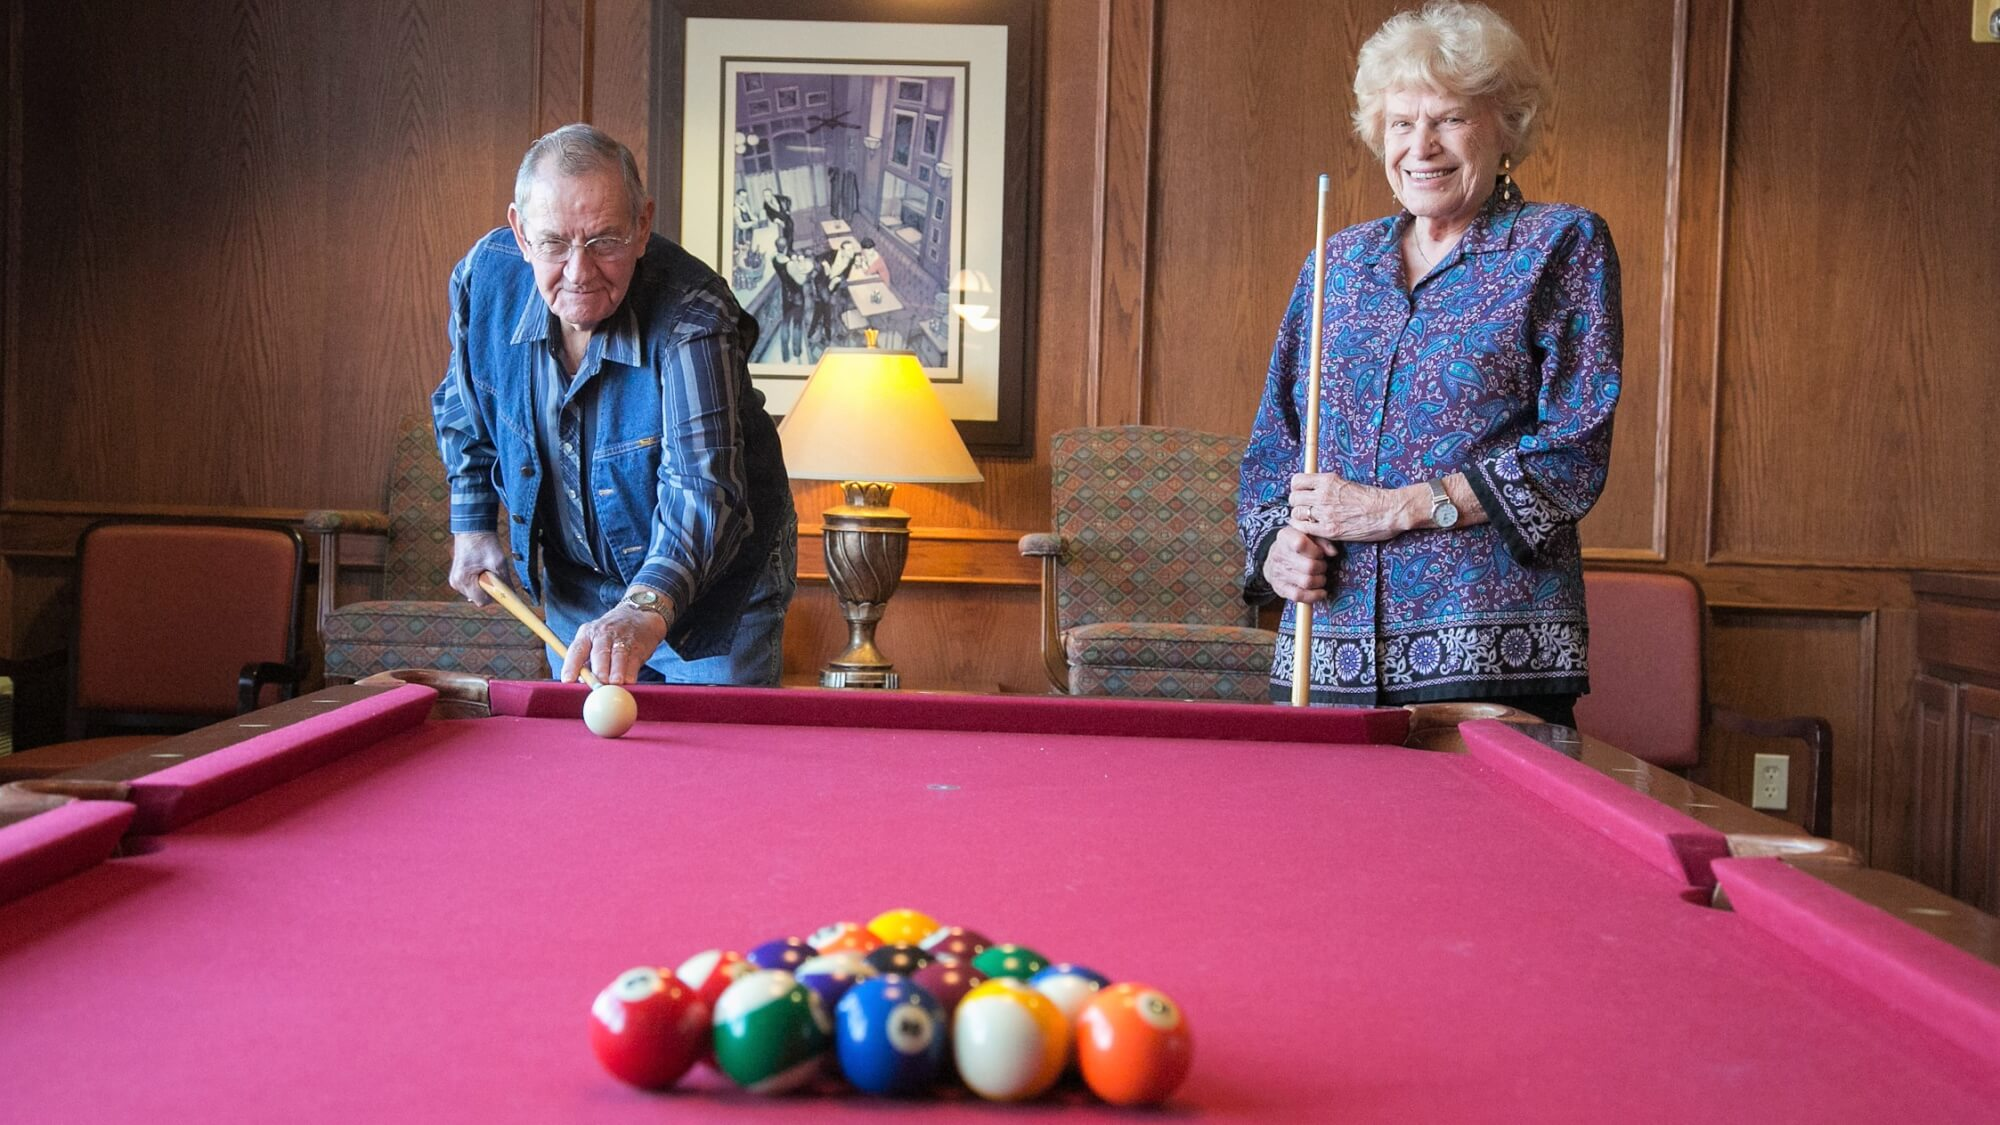 Playing pool in the billiards room is a great pastime at Walnut Grove.